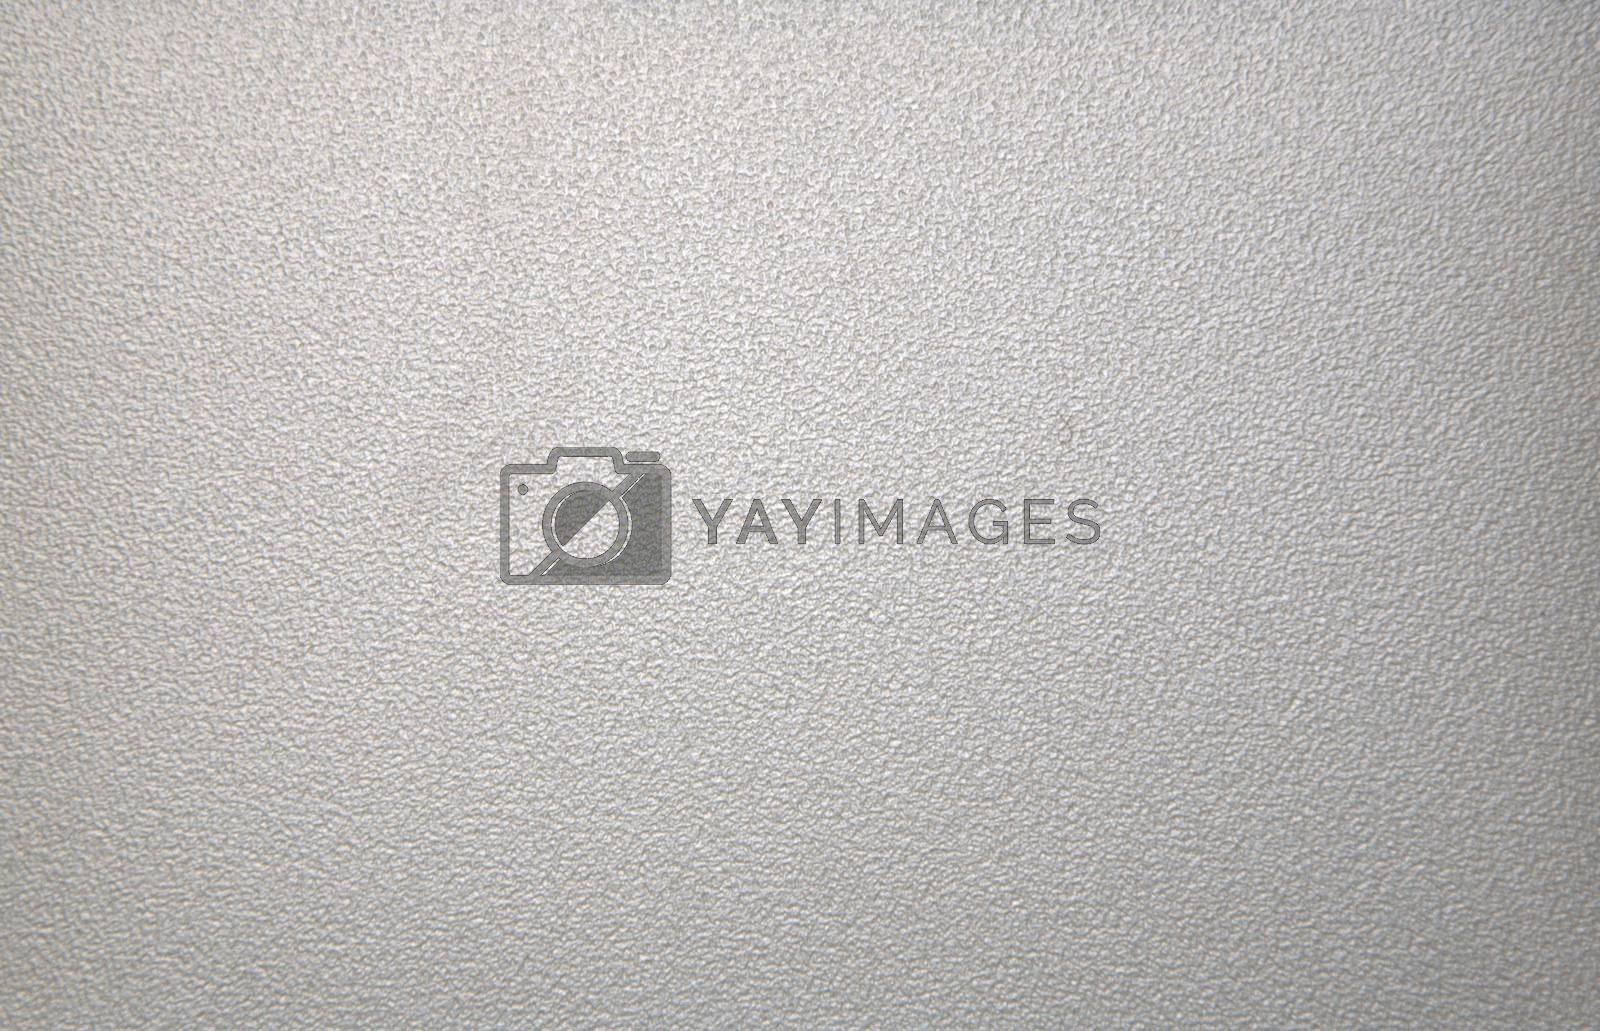 Light gray rough metallic surface. Background. Texture